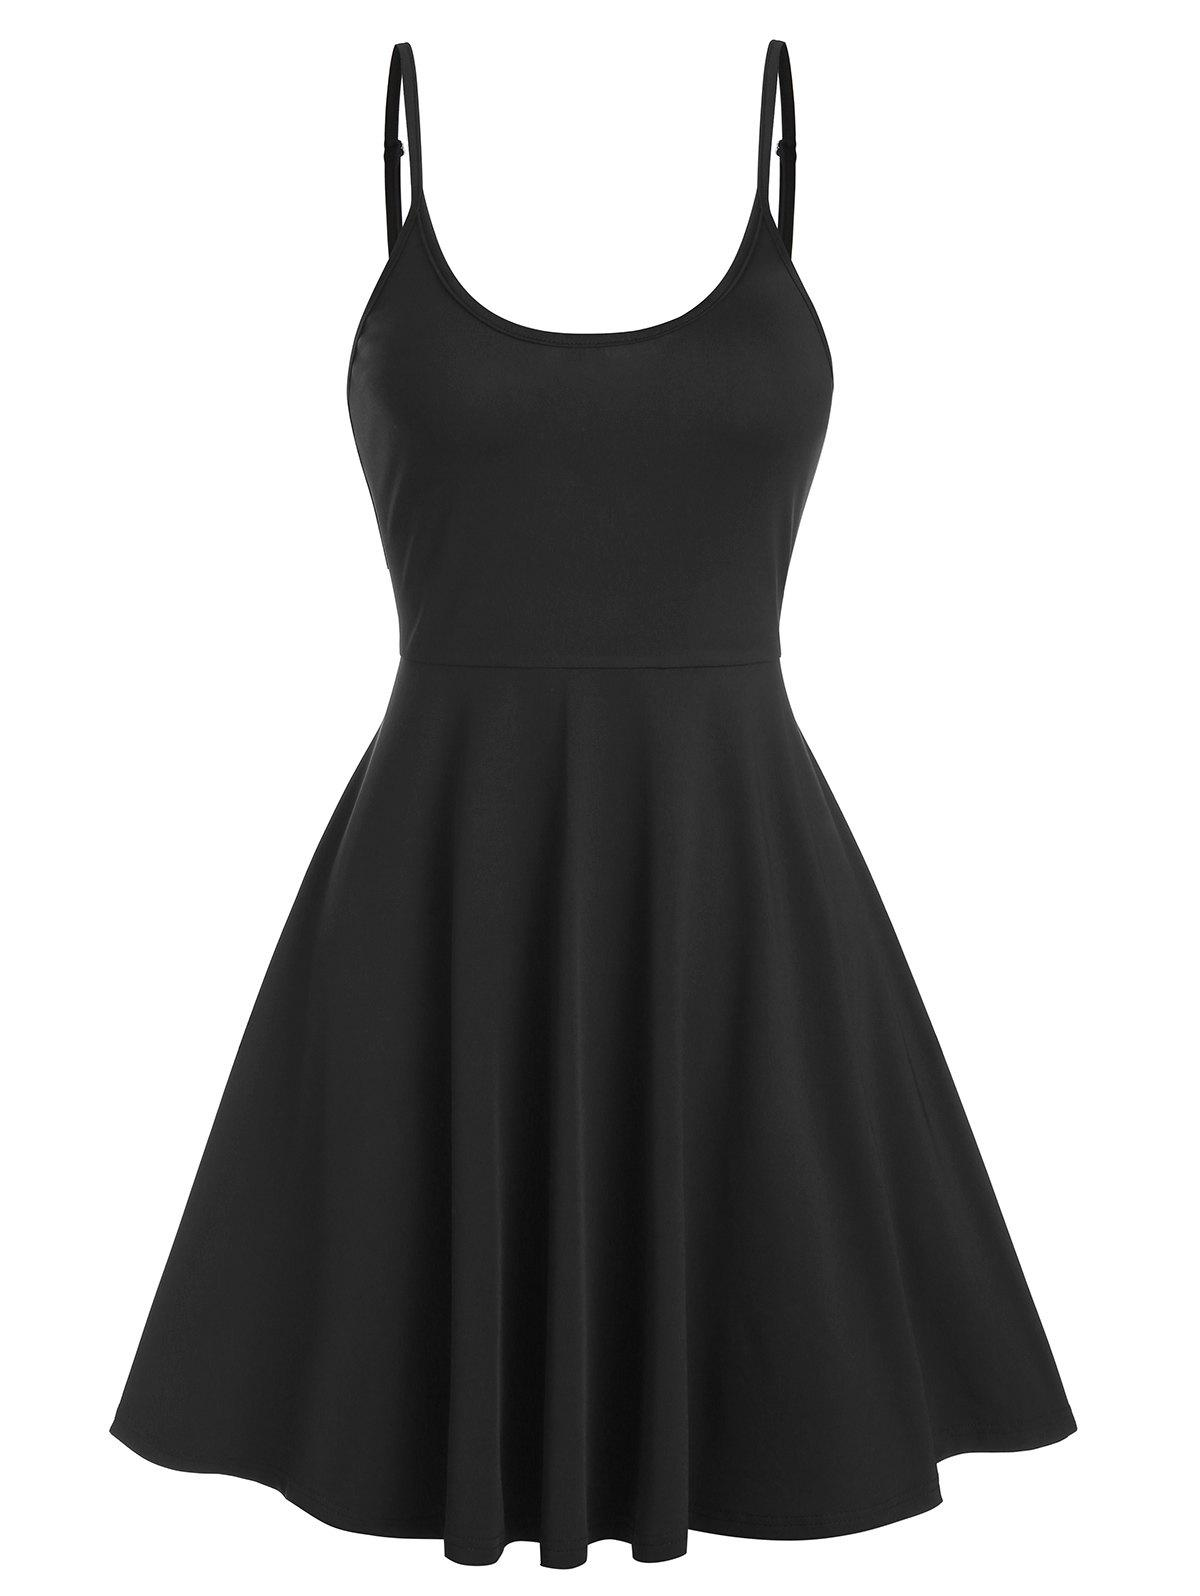 Robe Simple à Bretelle Fine Noir L